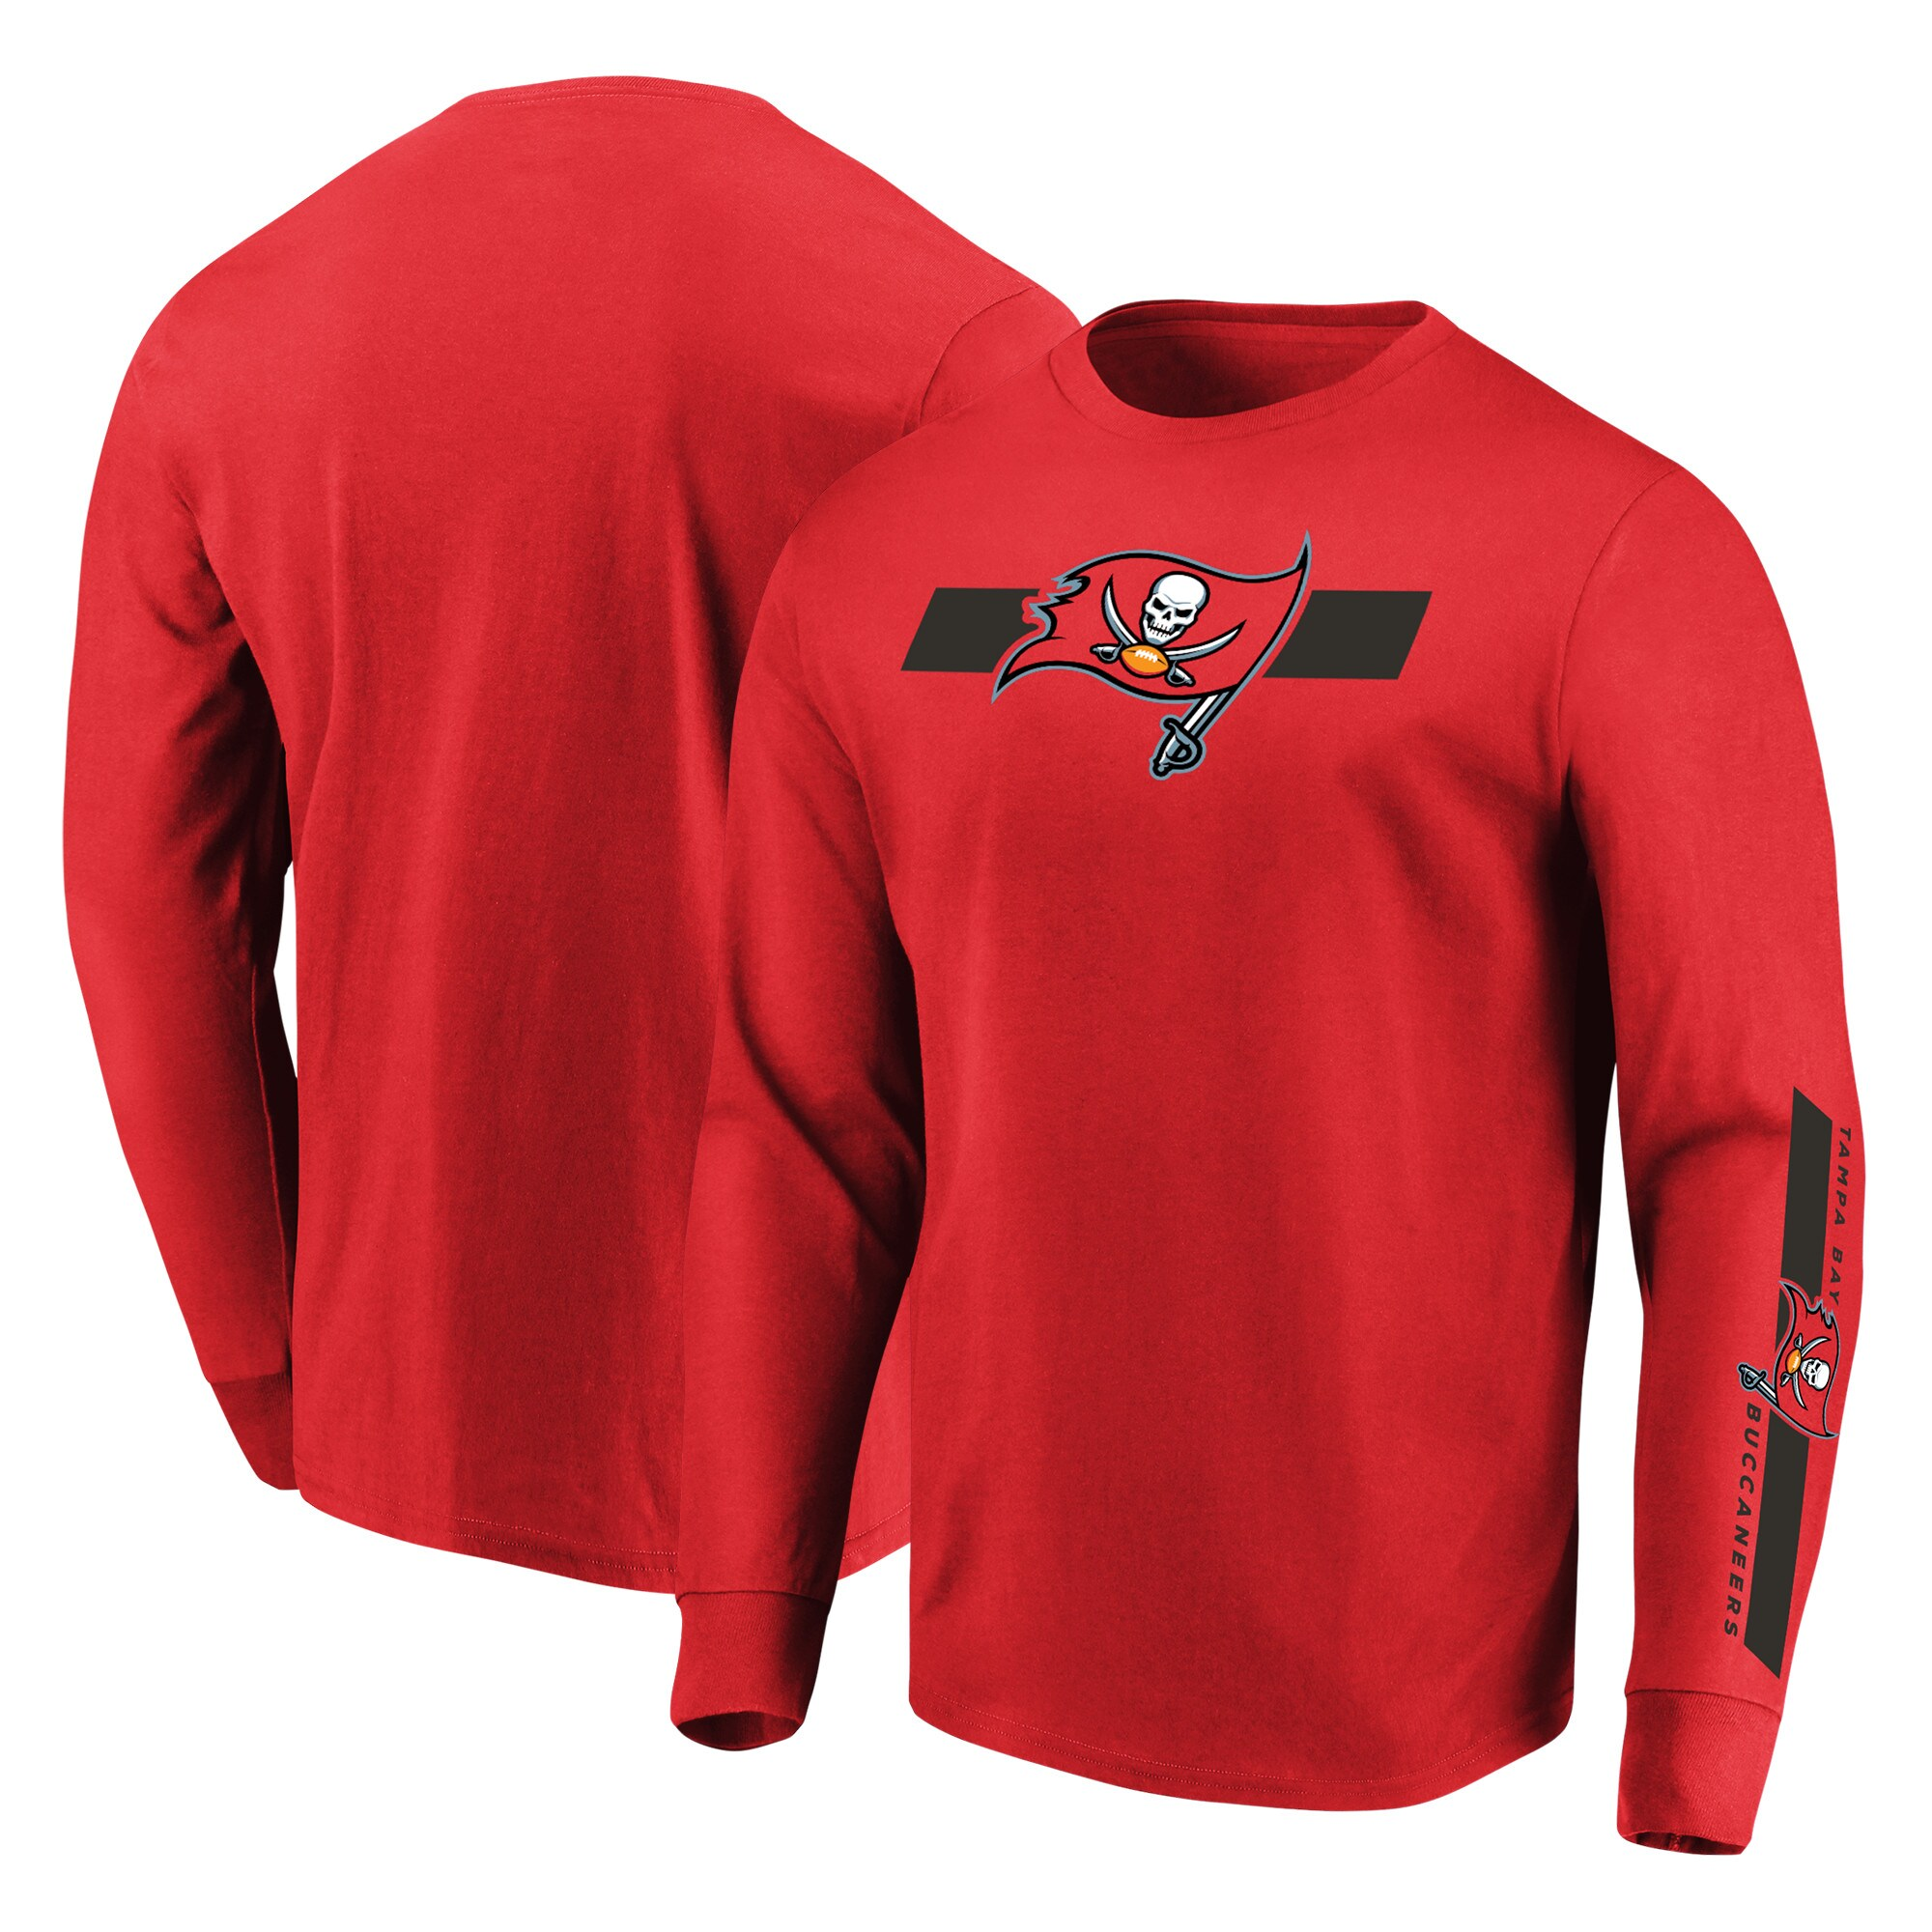 Tampa Bay Buccaneers Majestic Dual Threat Long Sleeve T-Shirt - Red